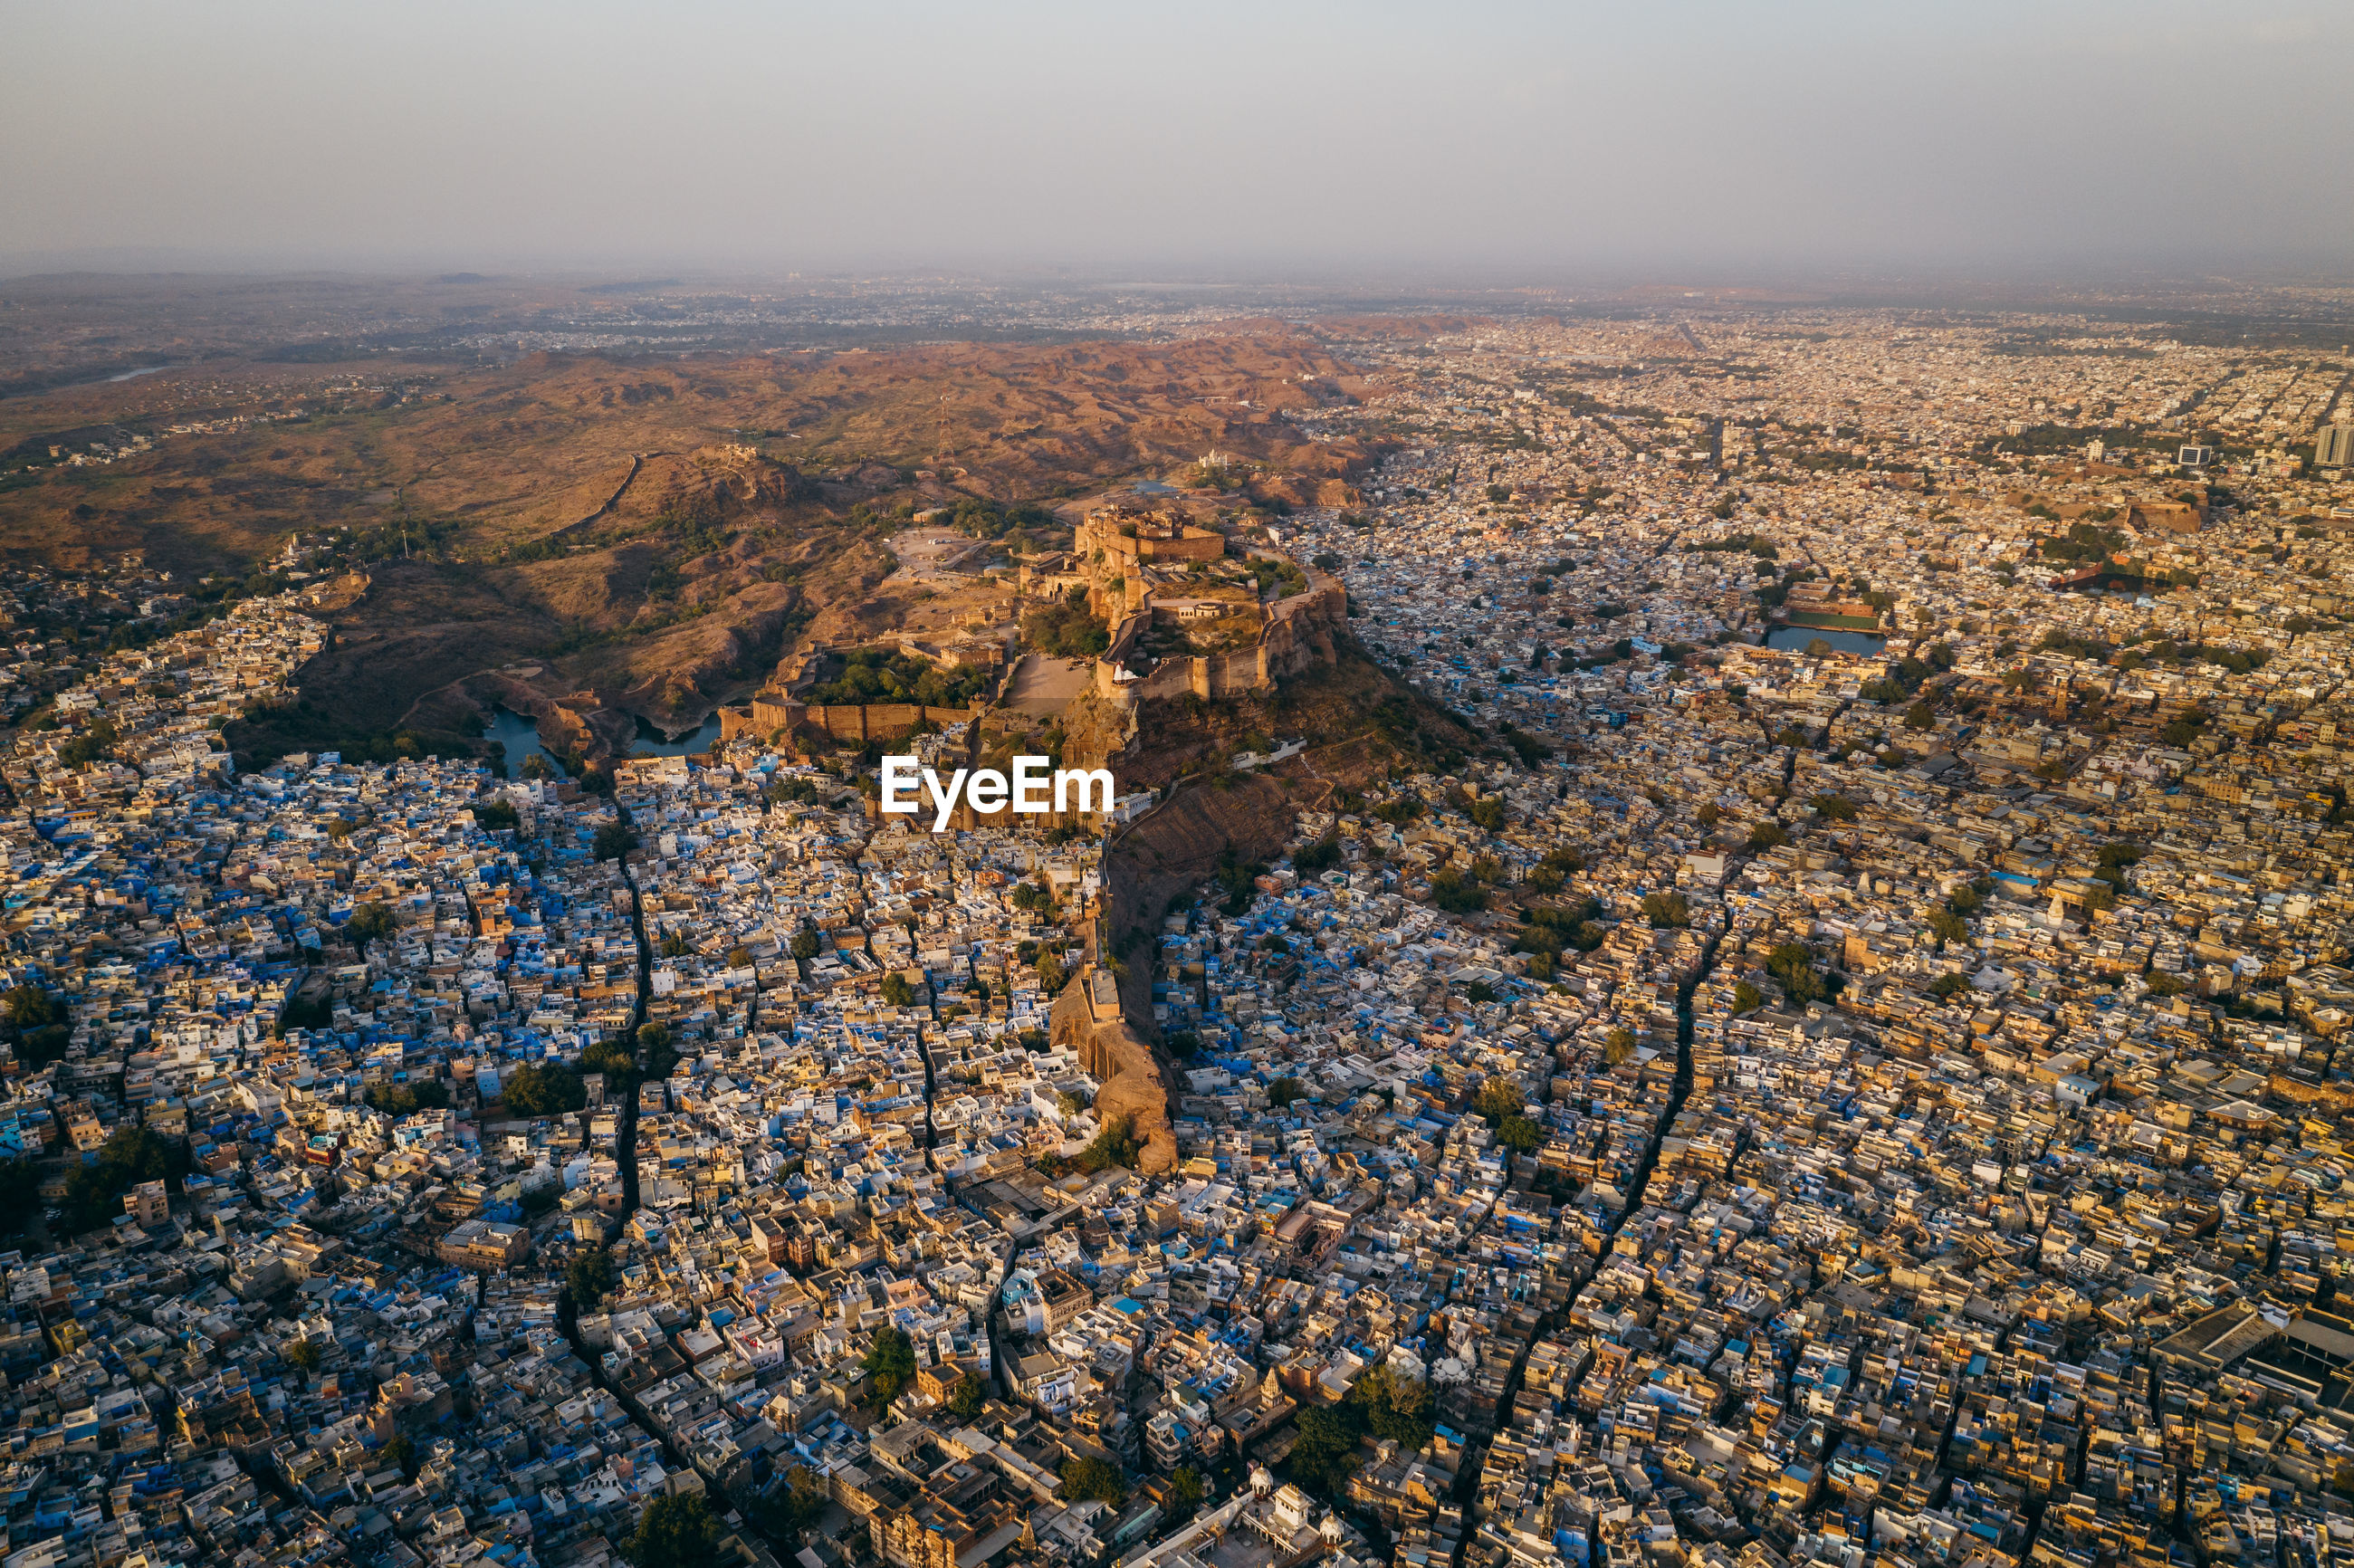 HIGH ANGLE VIEW OF CITYSCAPE AND LAND